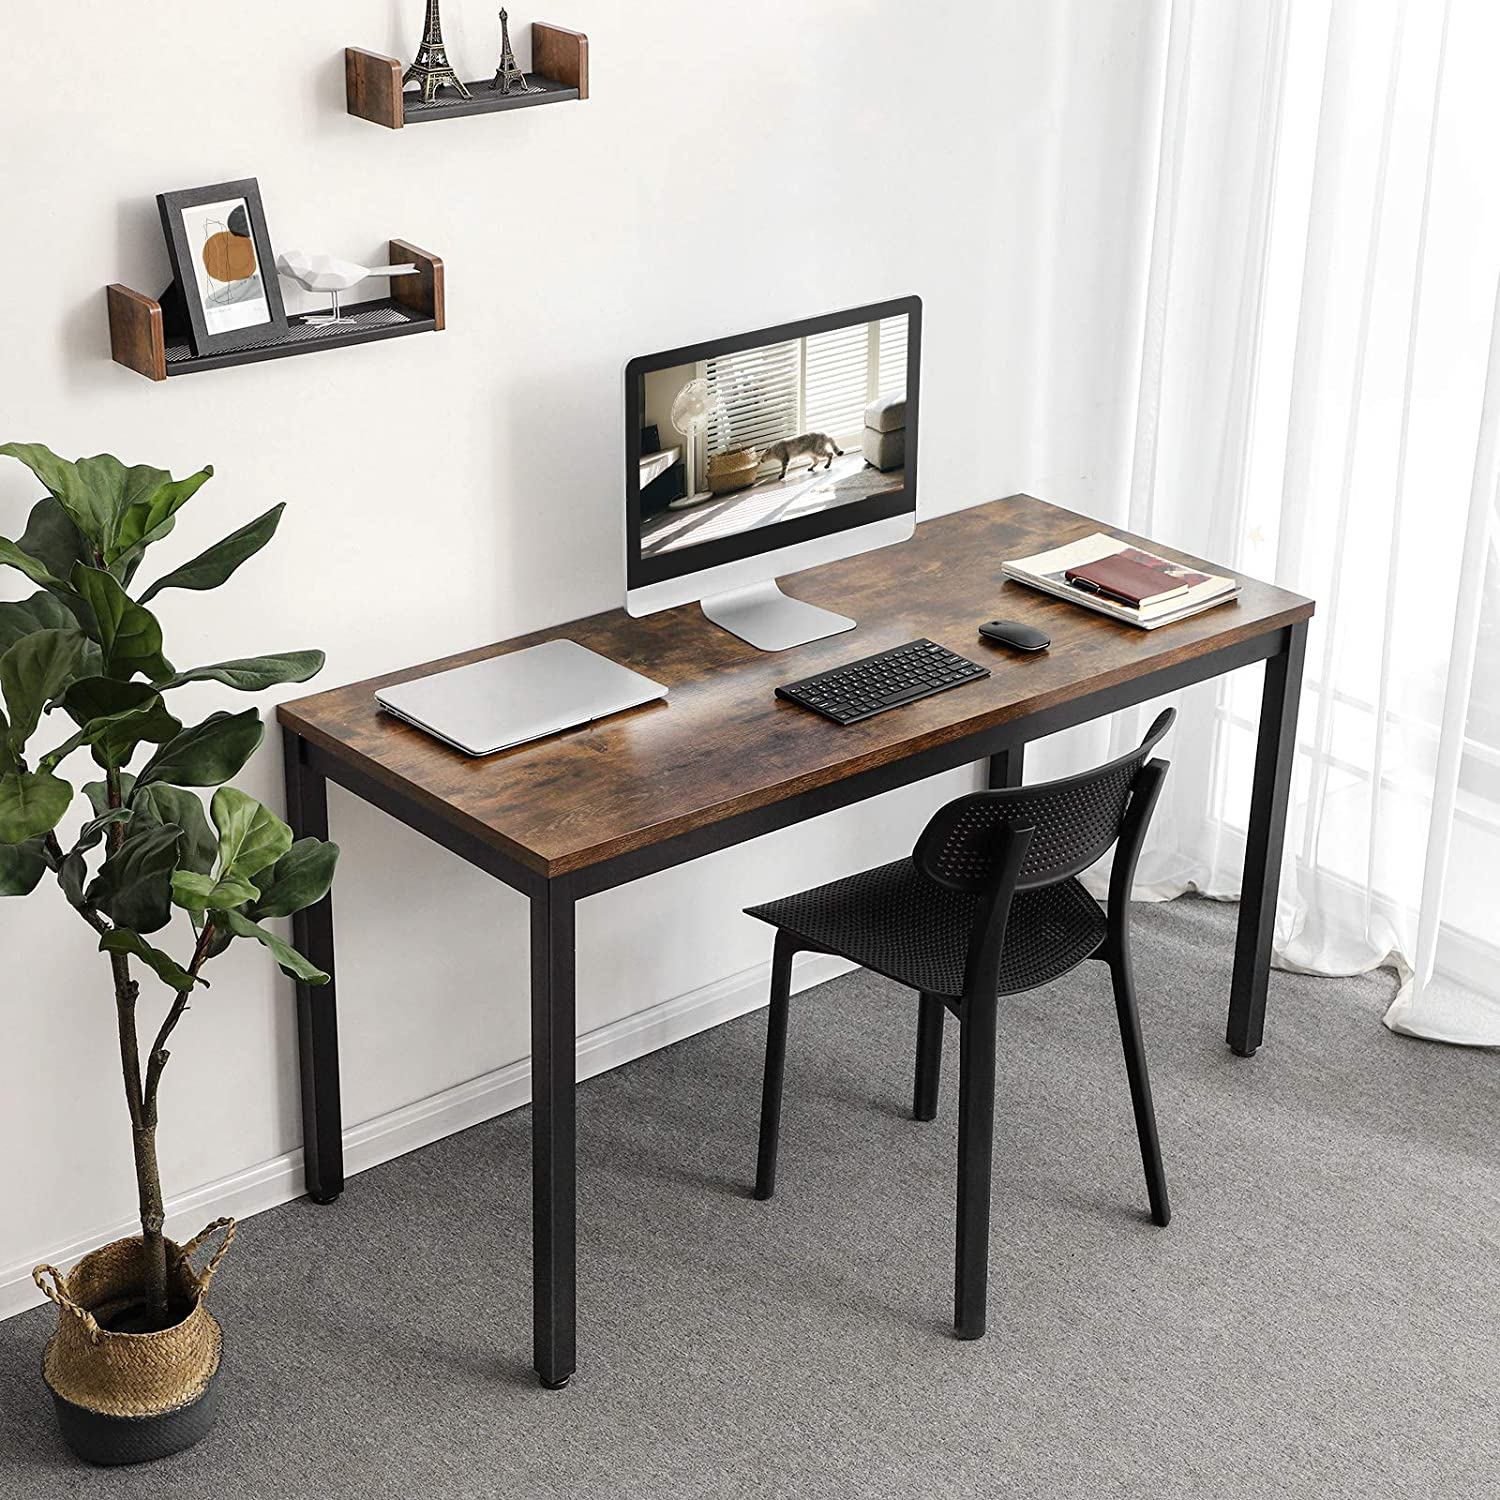 VASAGLE Industrial Computer Writing Desk Rustic Brown ULWD57X 55 Inch Office Study Desk for Laptop